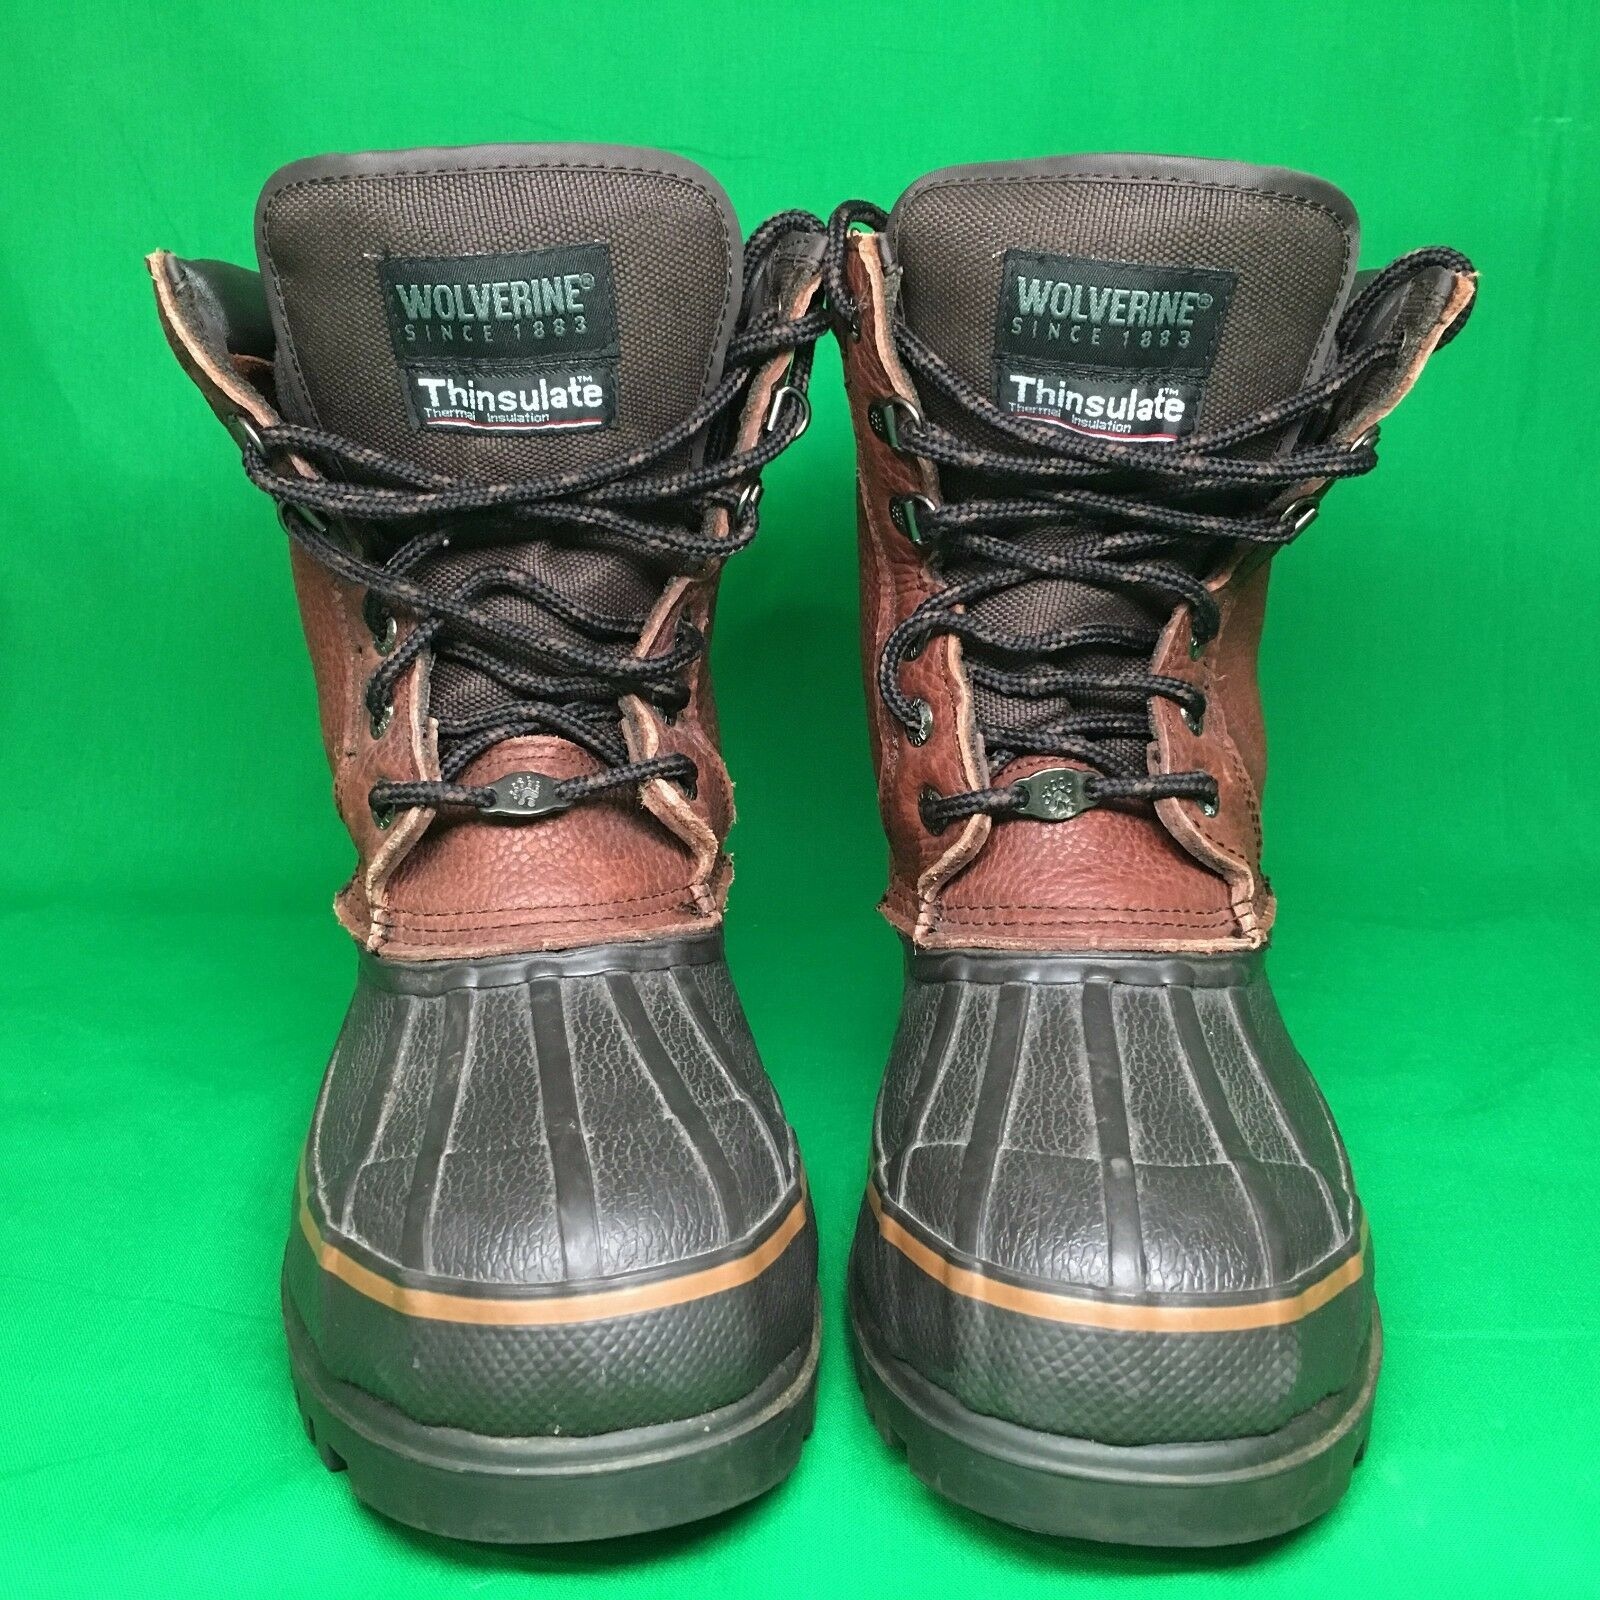 Wolverine Thinsulate Winter Boots Mens size 8